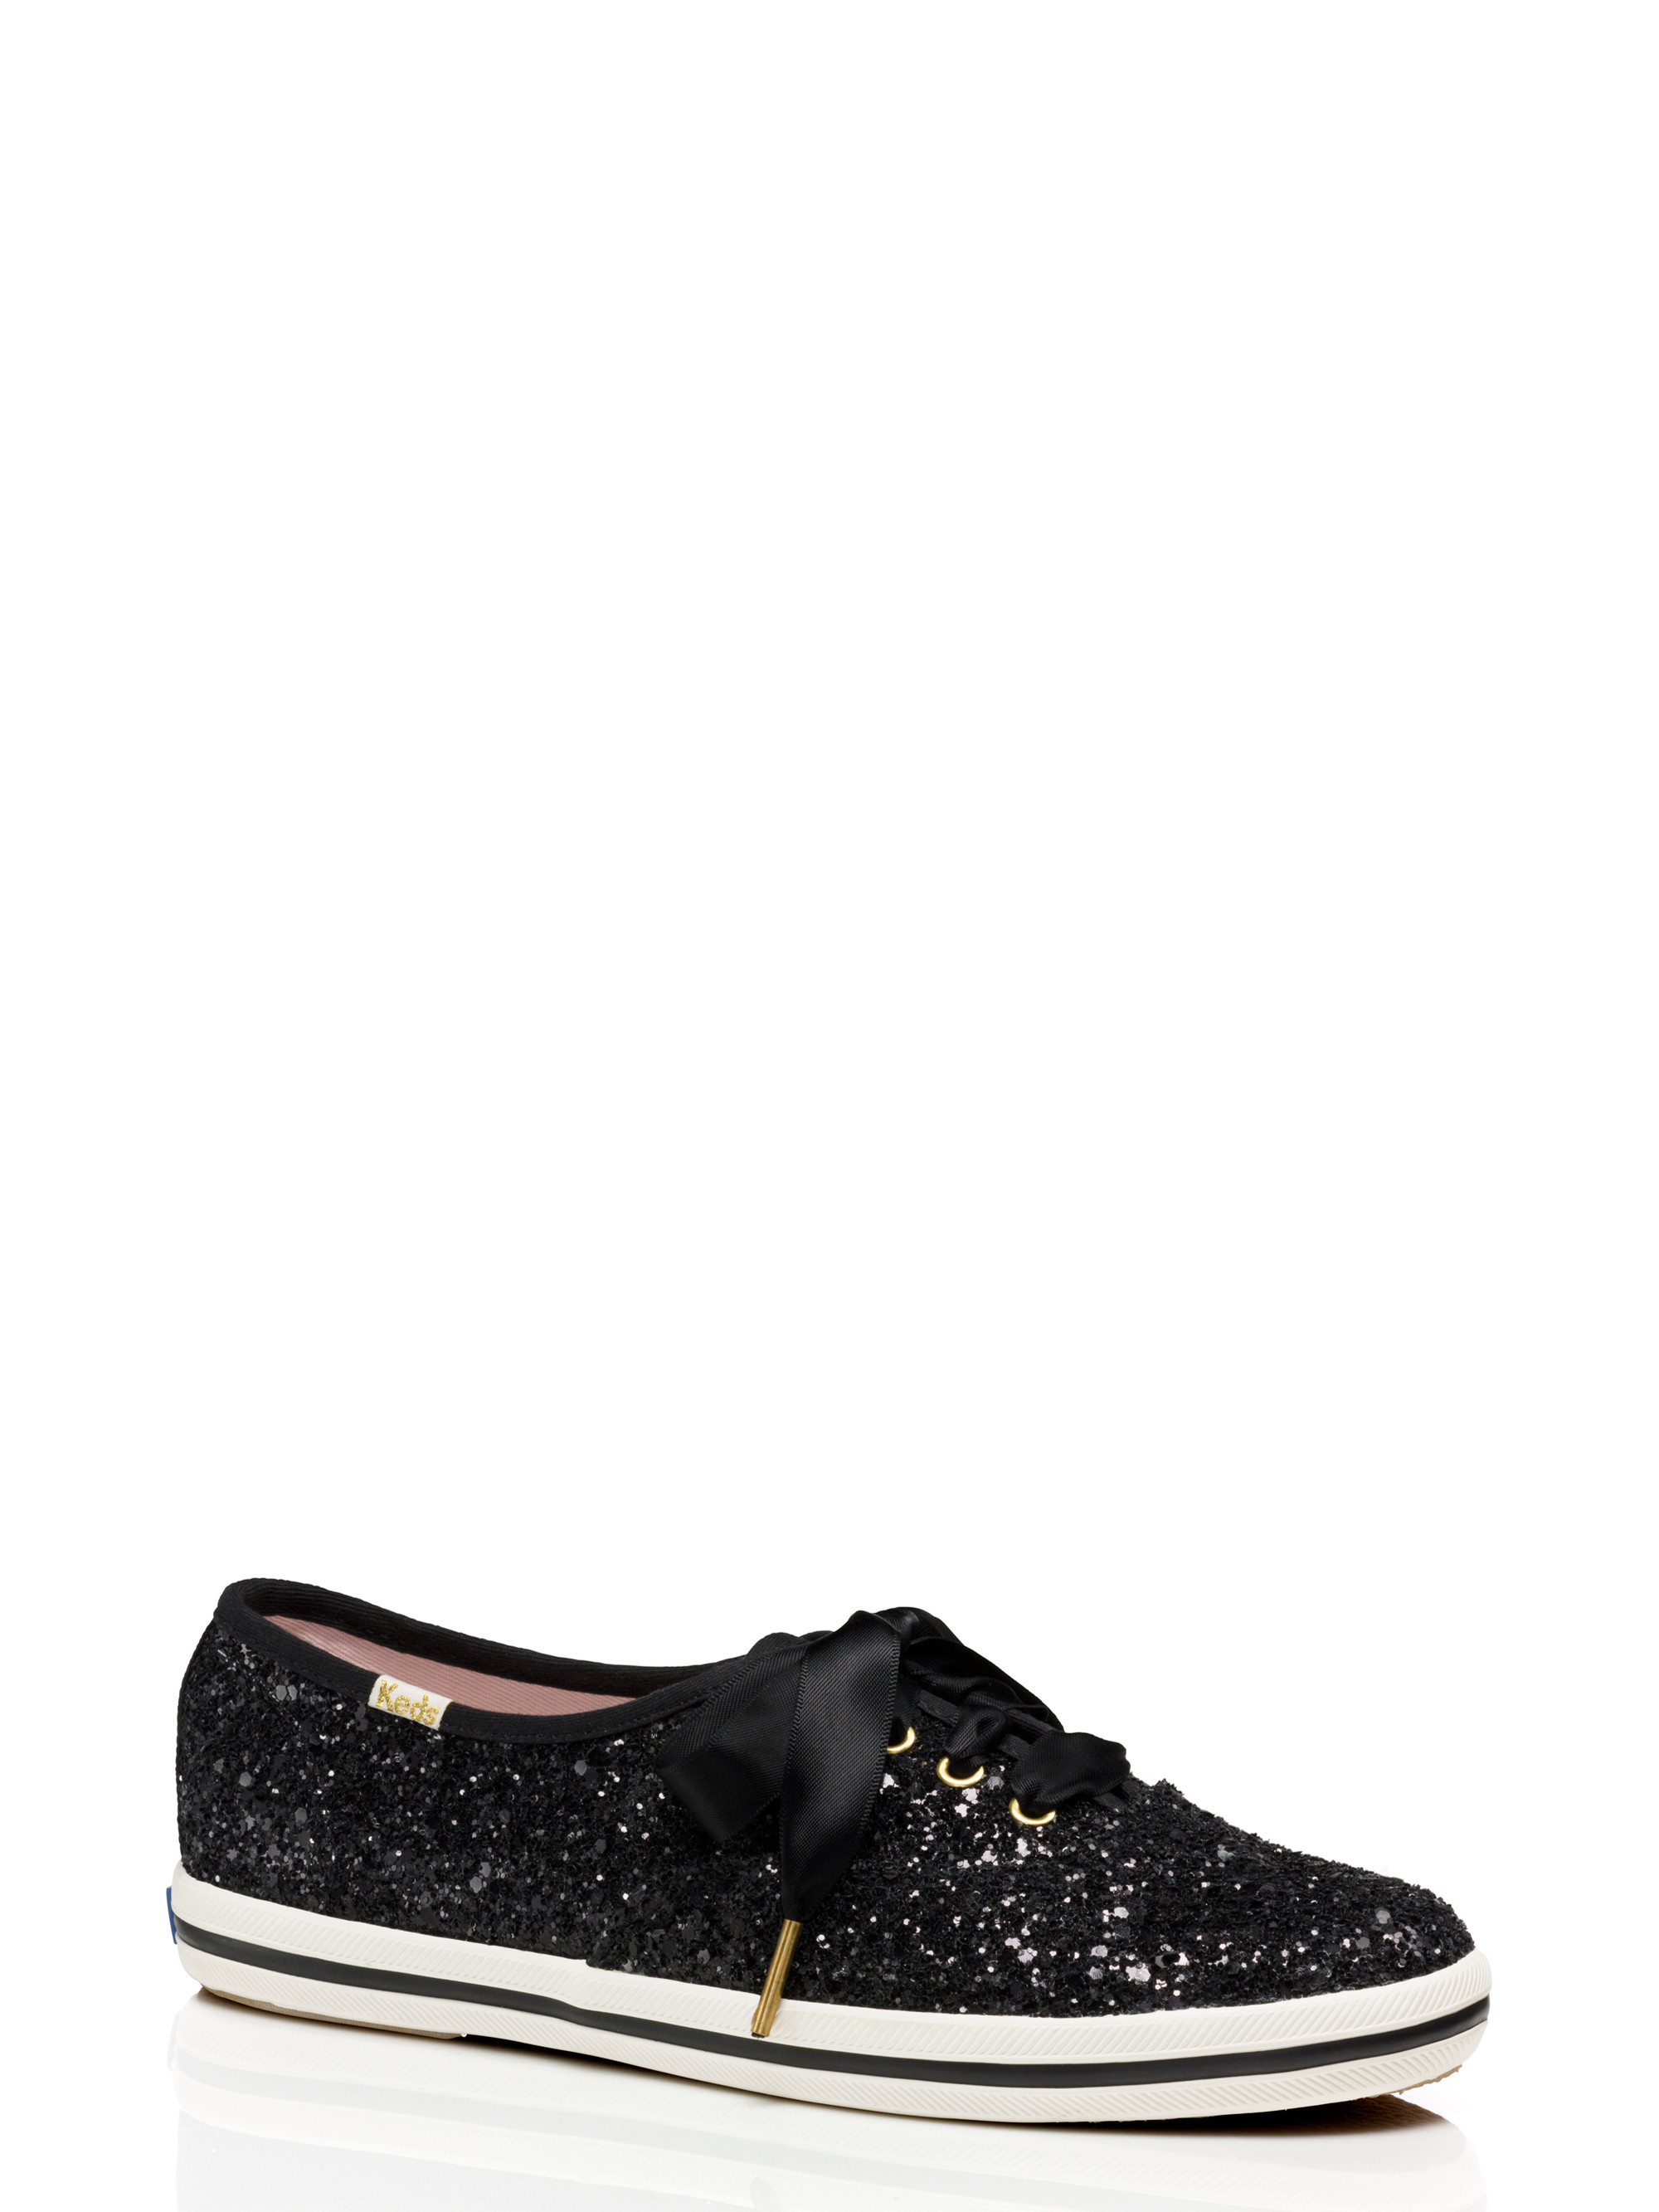 kate spade canvas keds for glitter sneakers in black lyst